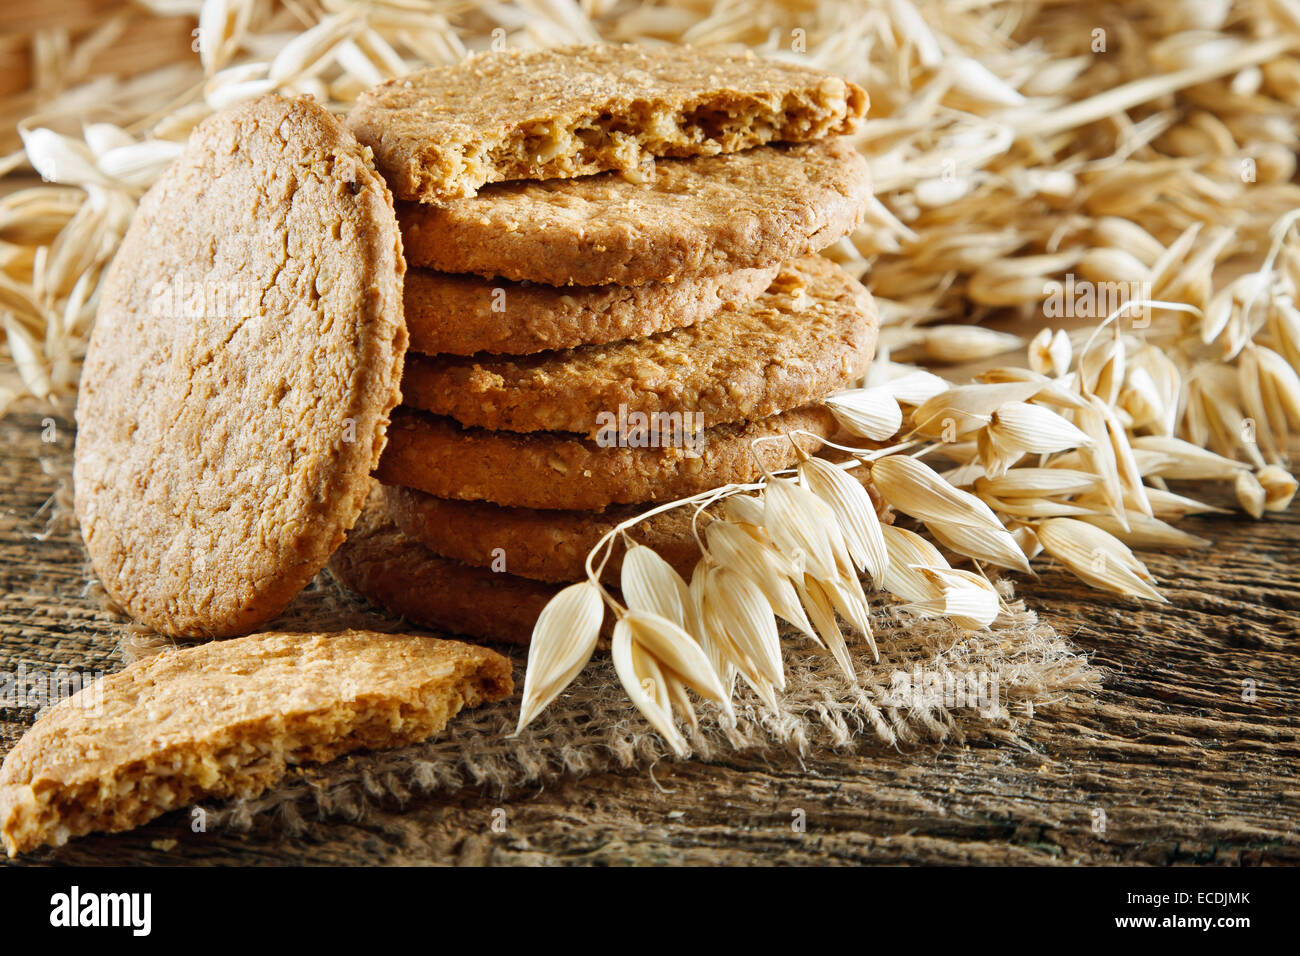 Oatmeal cookies on the wooden table - Stock Image